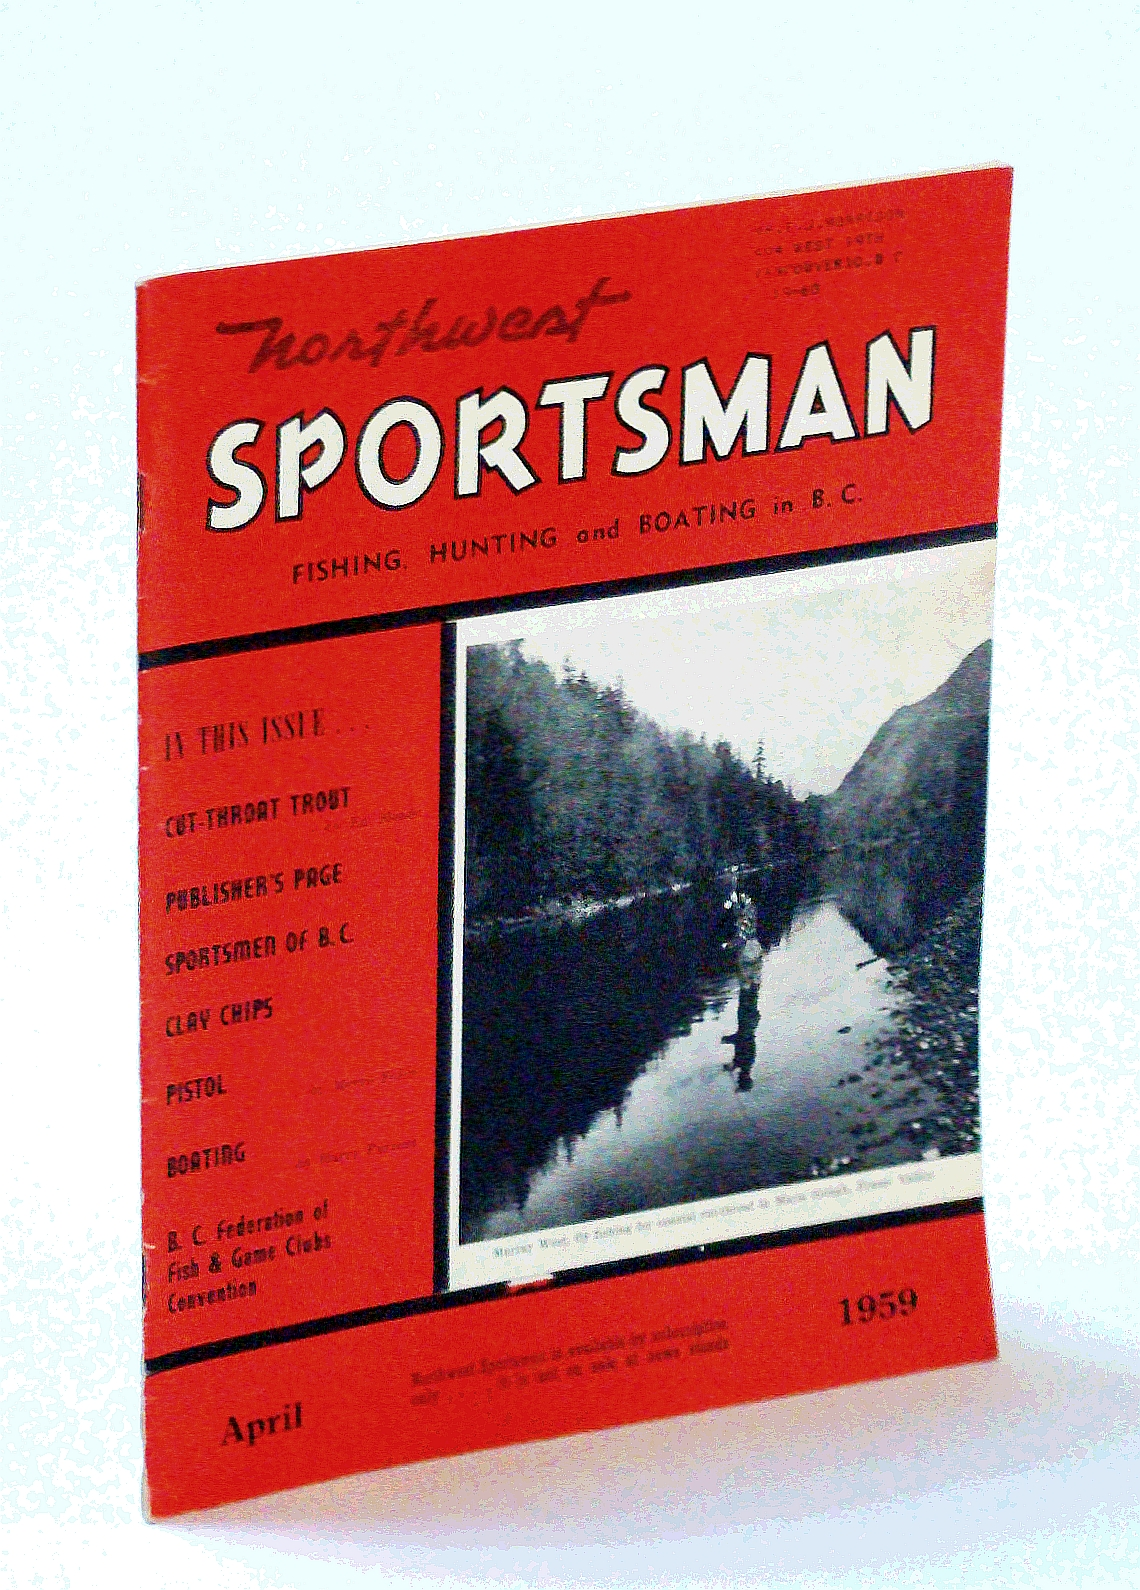 Image for Northwest Sportsman Magazine - Fishing, Hunting and Boating in B.C., April [Apr.] 1959 - Cover Photo of Murray West Fly Fishing for Cut-Throat in Maria Slough / Bert Palmer